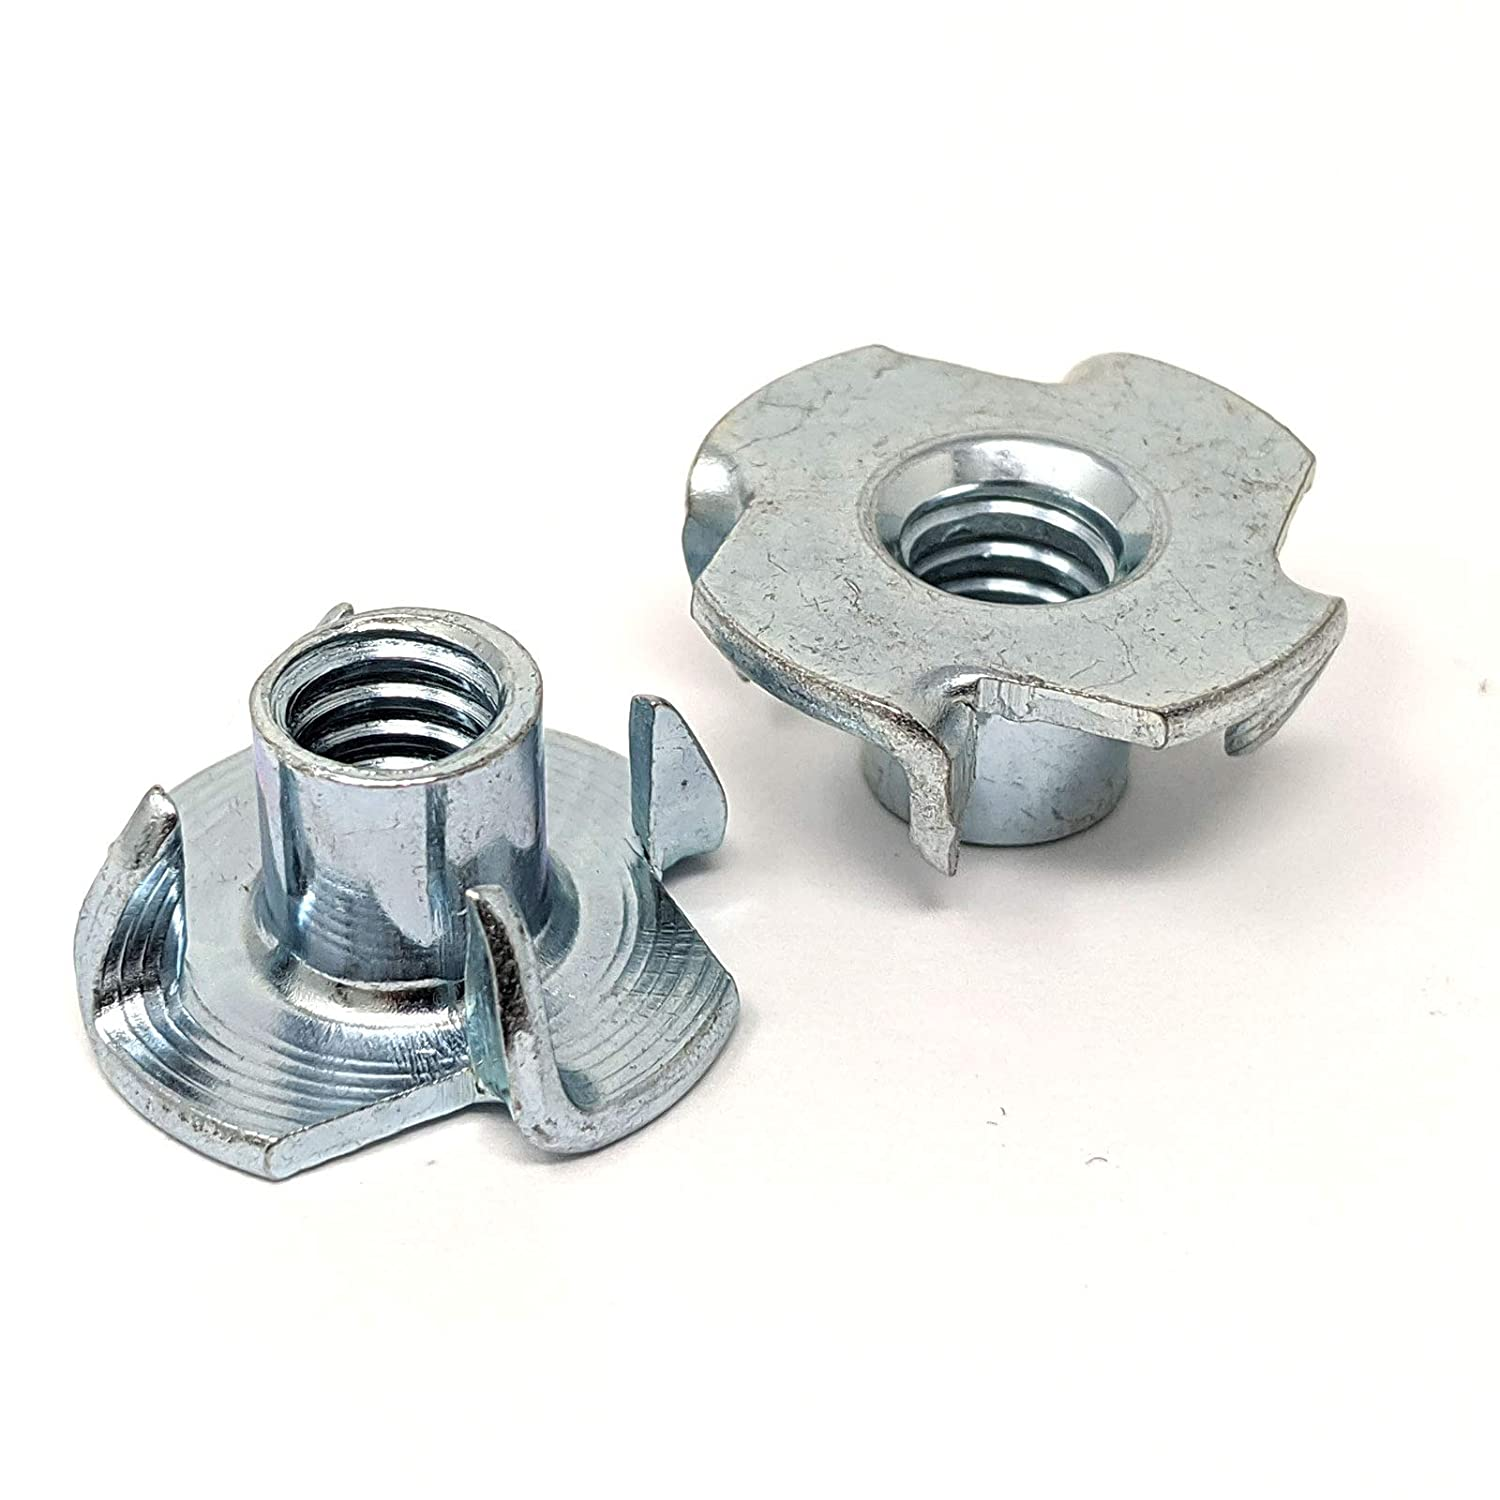 1//4-20 T-Nuts for Rock Climbing Holds Pronged Tee Nuts 5//16 Length 3//4 OD 25 pcs Wood Furniture /& Woodworking